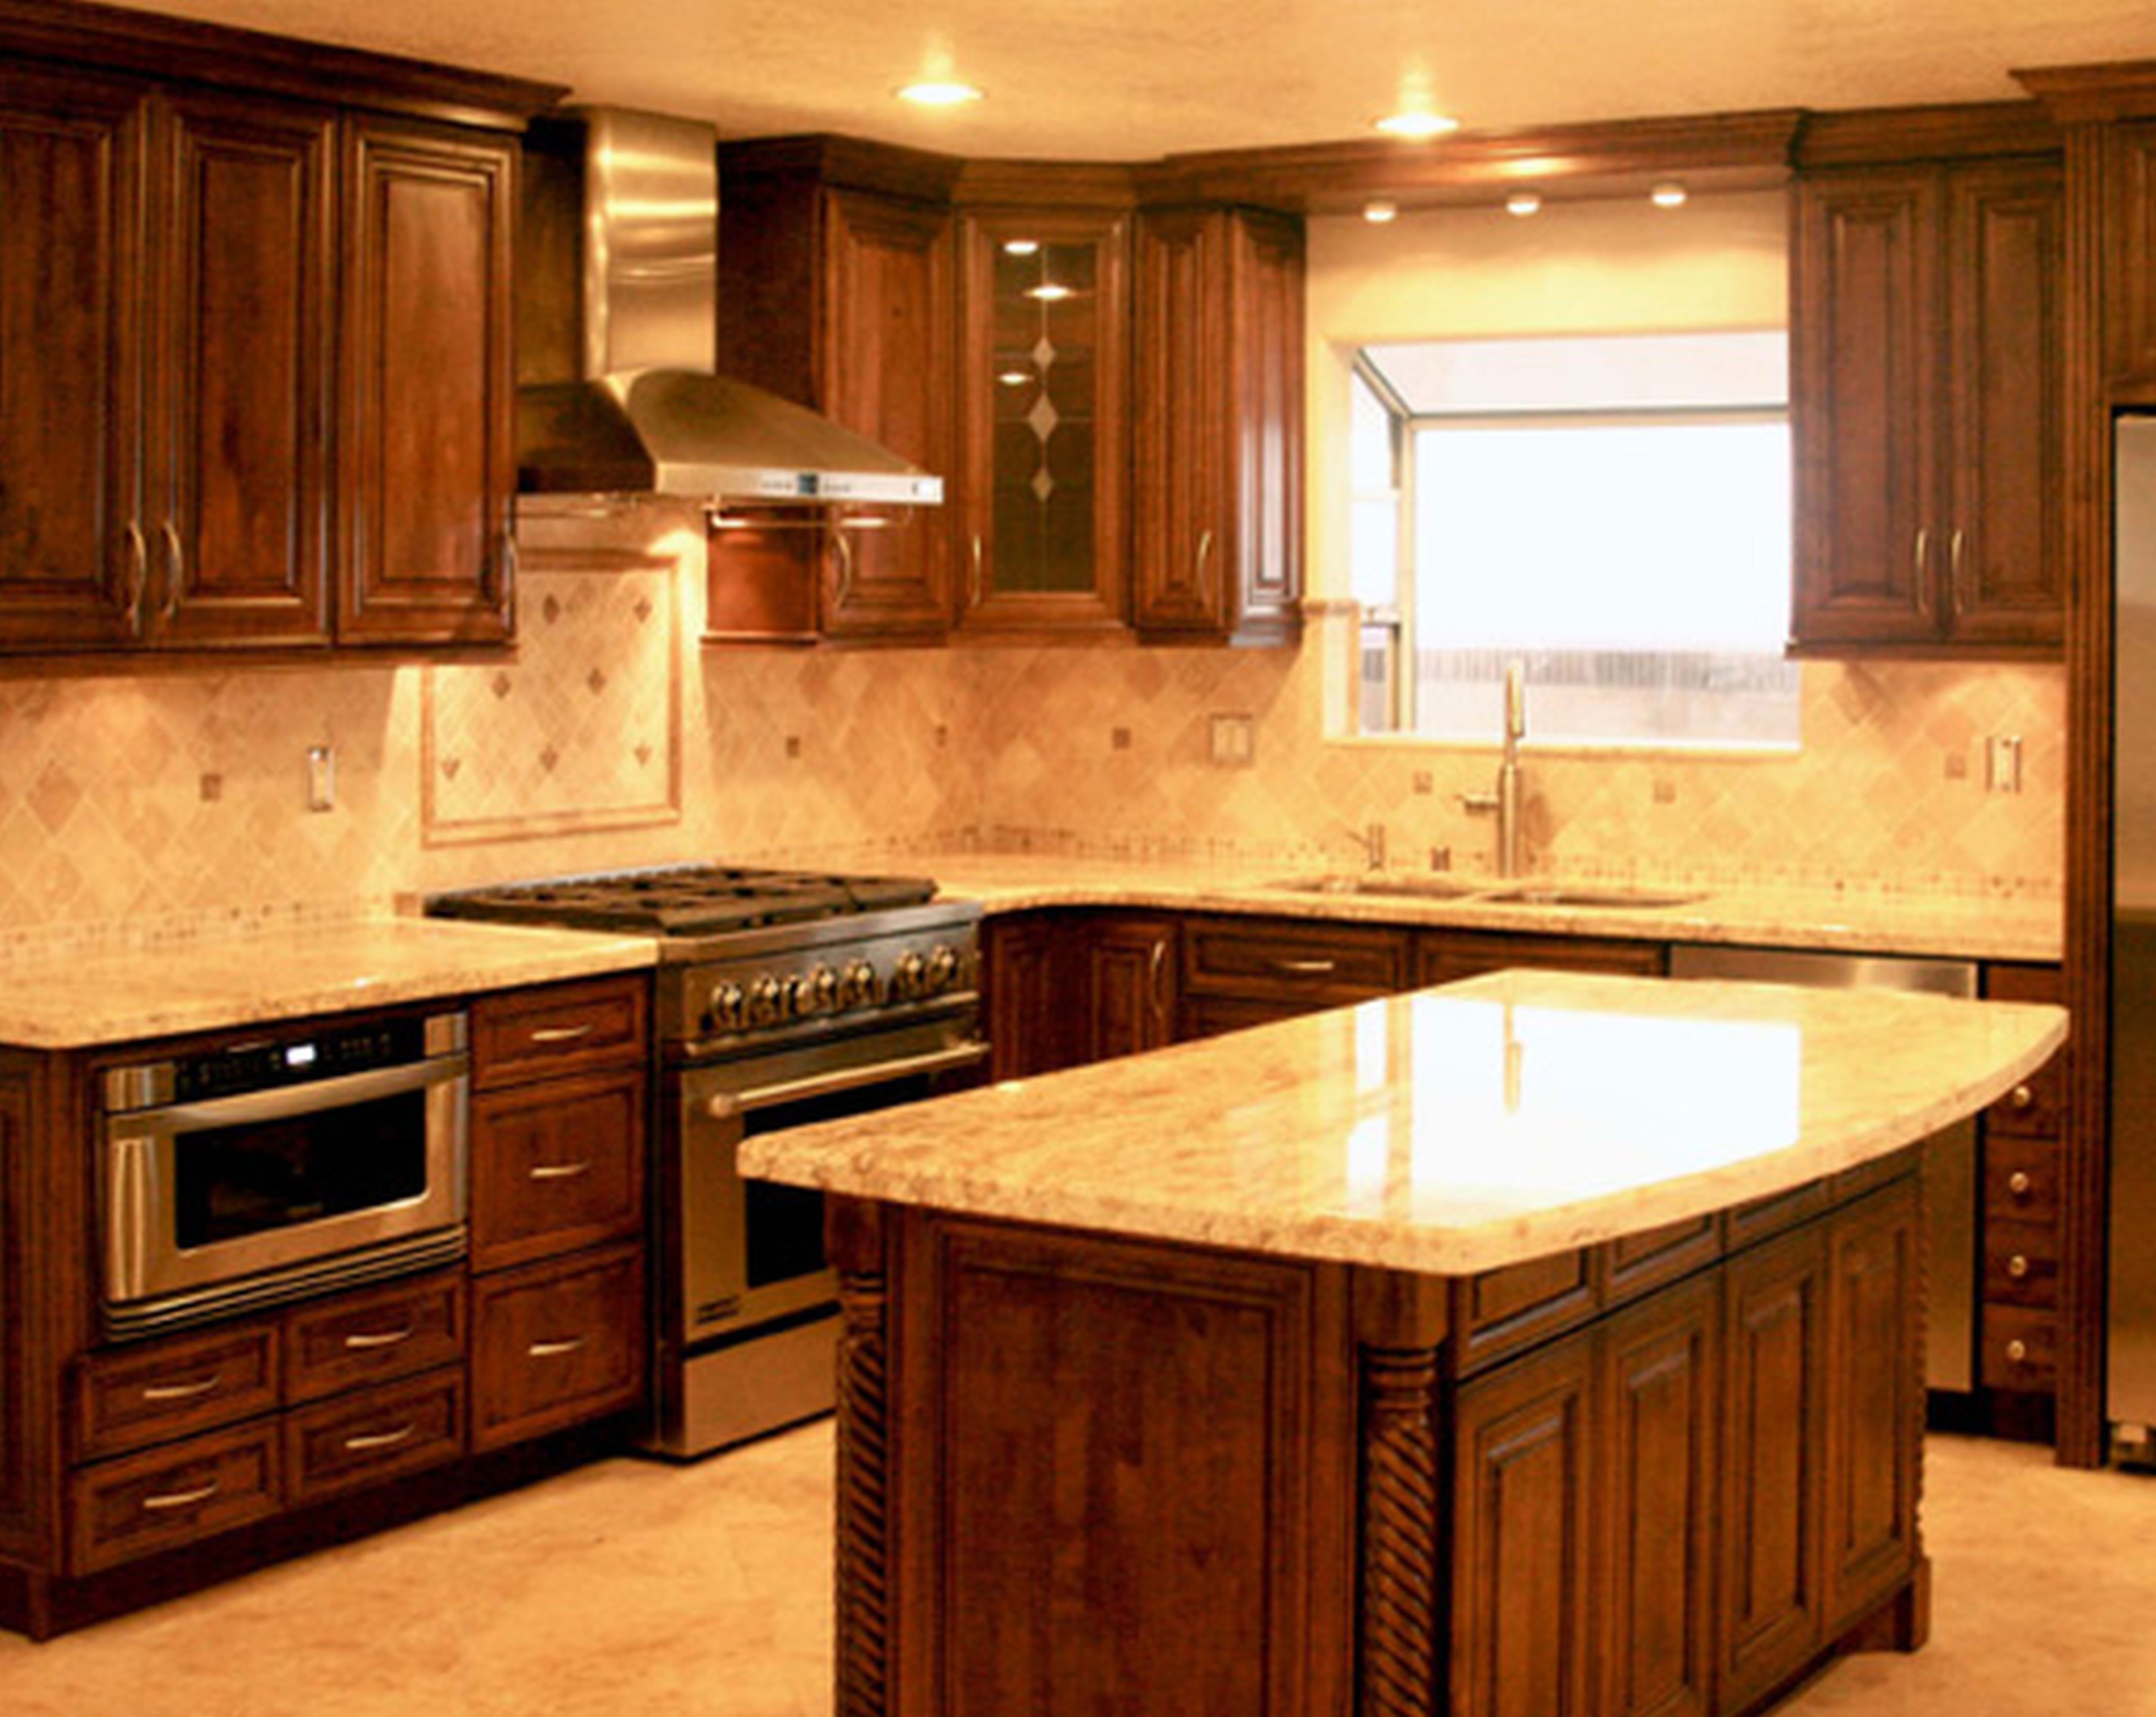 Dreamiest Distressed Kitchen for Sale